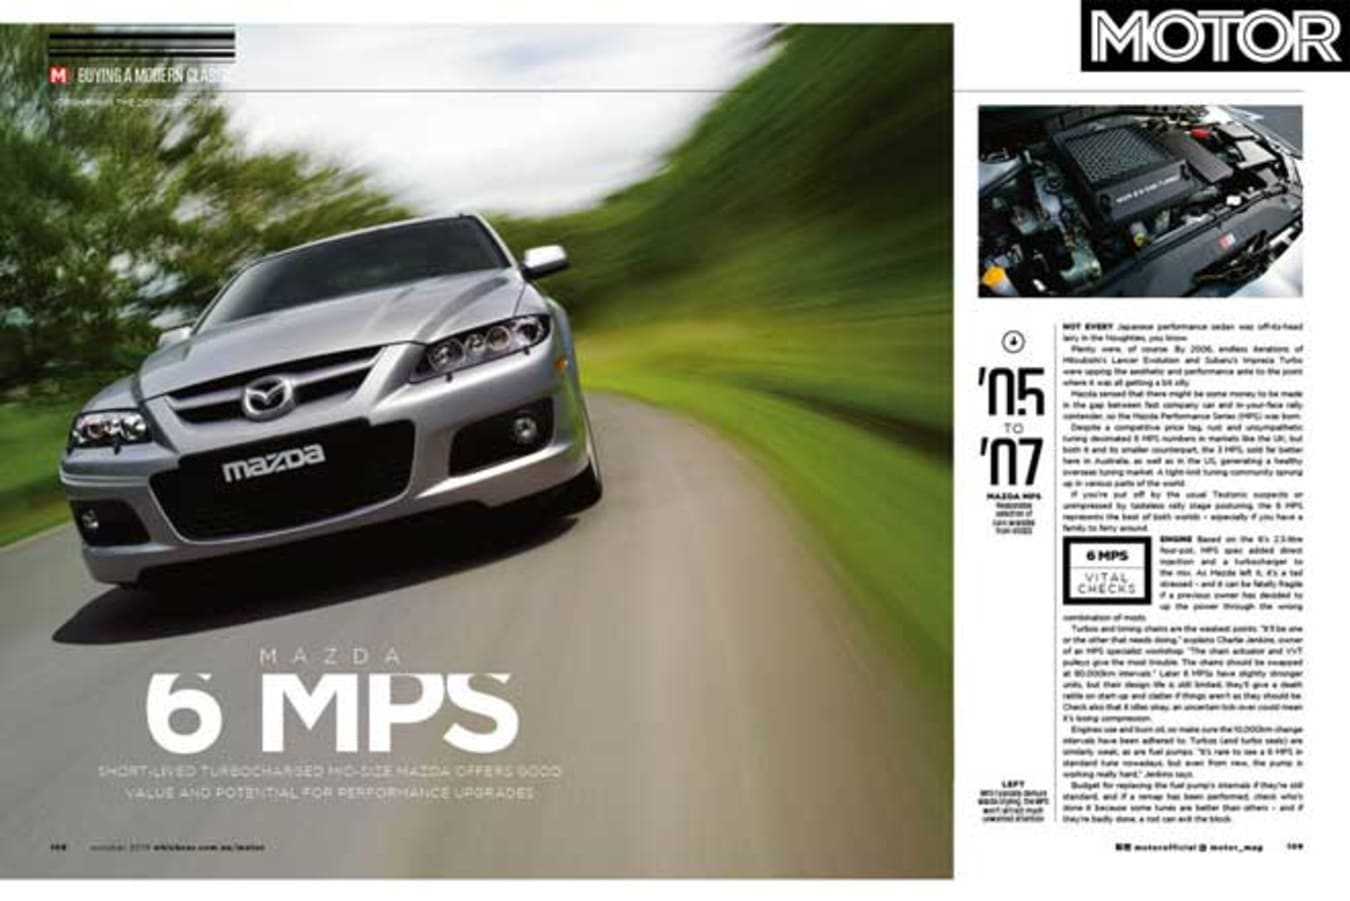 MOTOR Magazine October 2019 Issue Mazda 6 MPS Buyers Guide Jpg